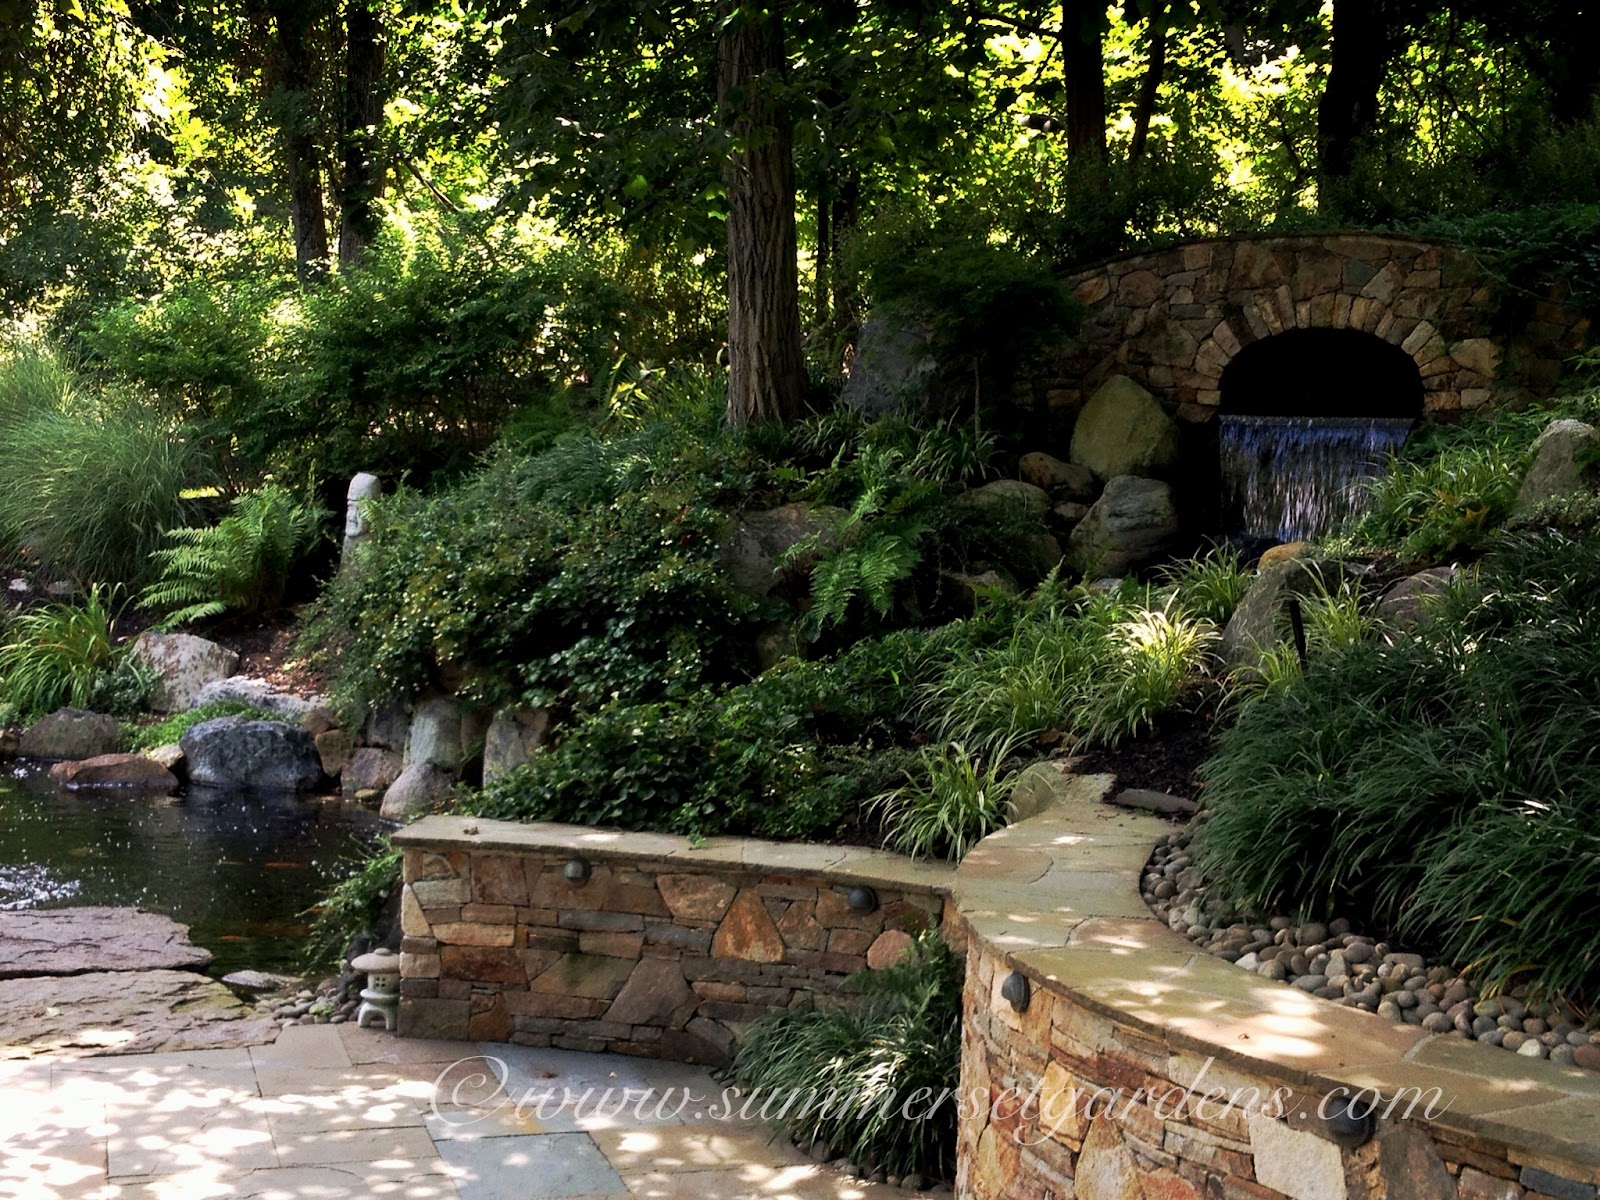 Garden design pond waterfall patio in rockland county ny for Garden design with pond and waterfall